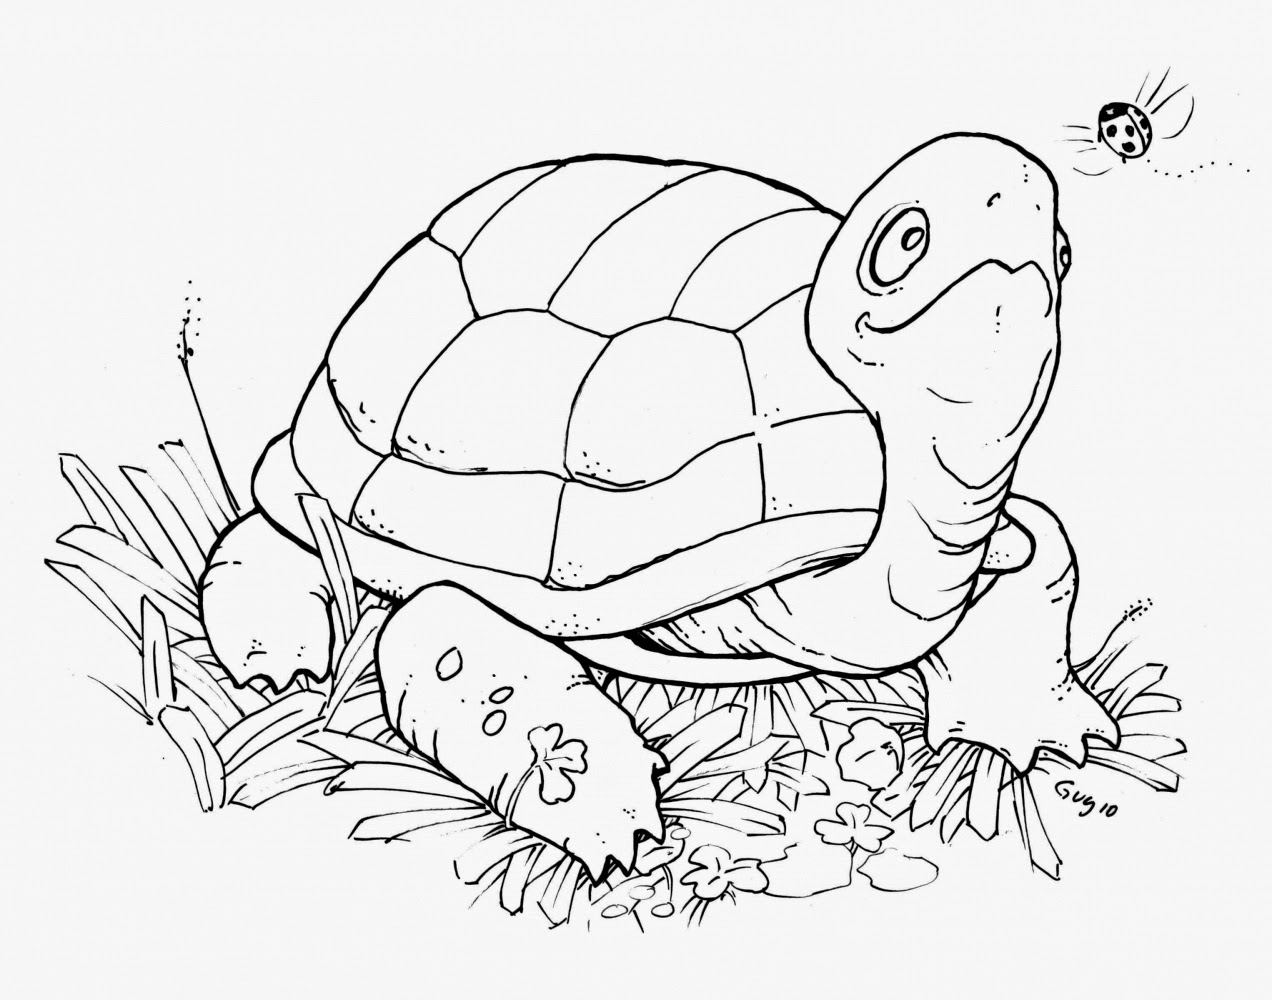 turtle pictures to print rules of the jungle turtle pictures to print and color pictures to print turtle 1 1